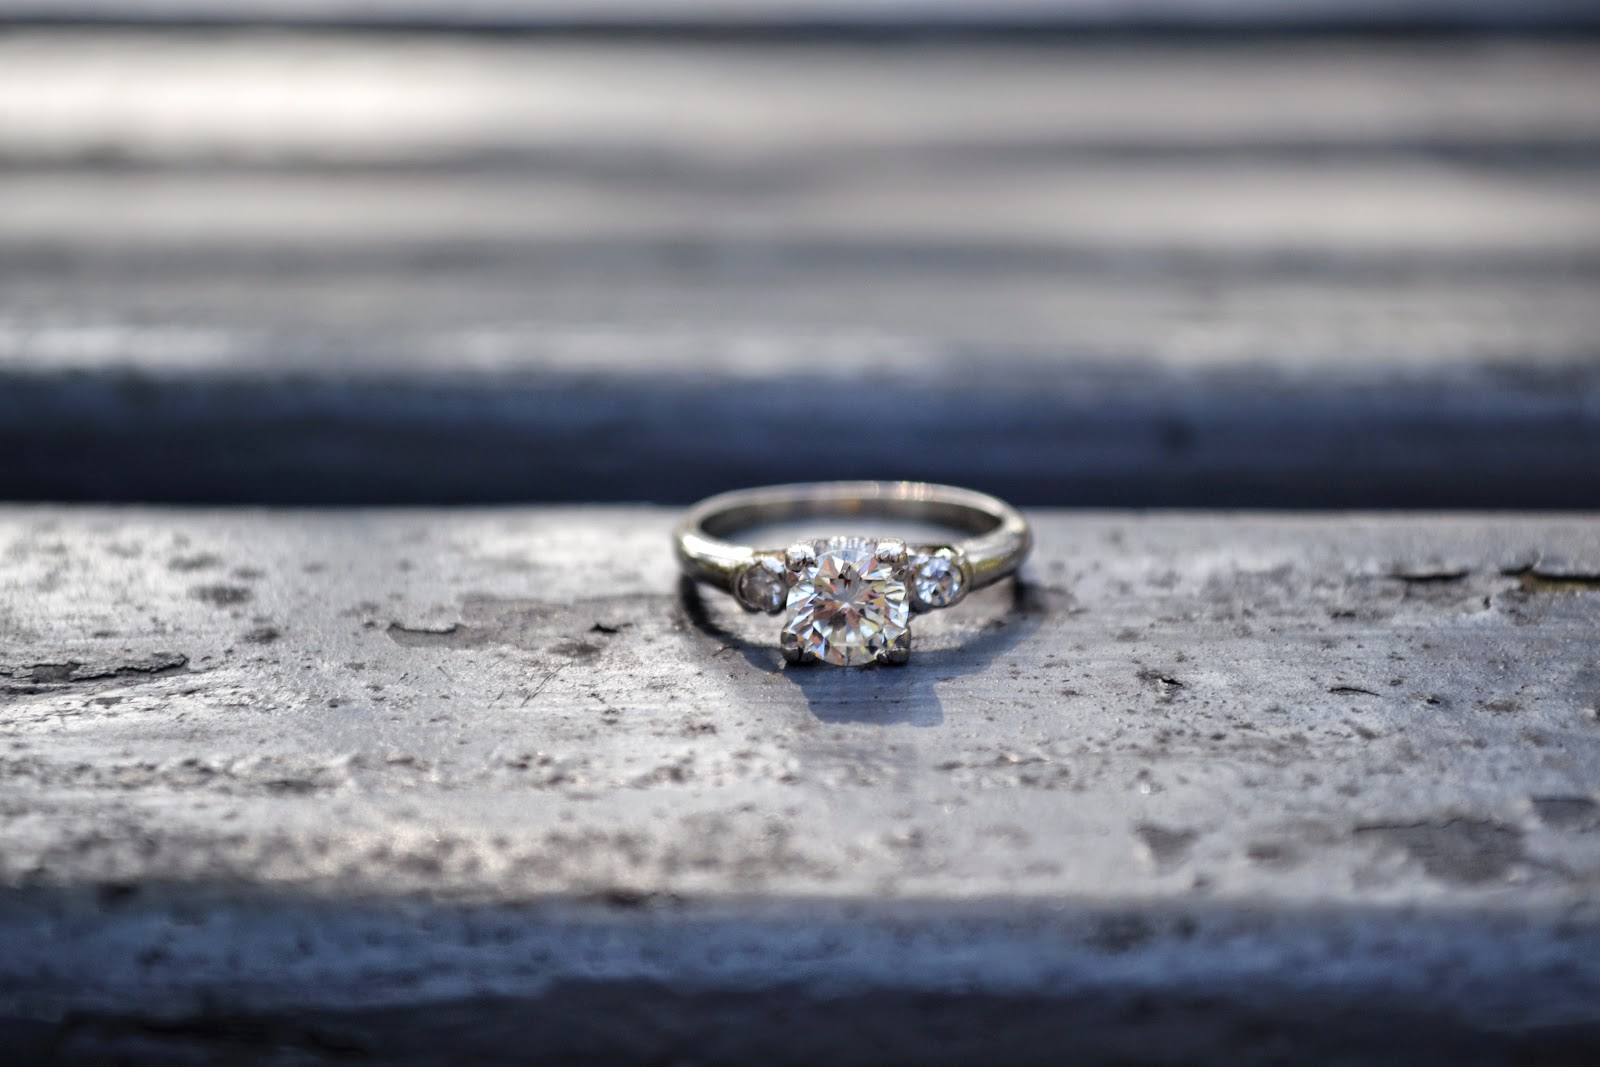 Huntington Library and Botanical Gardens engagement ring